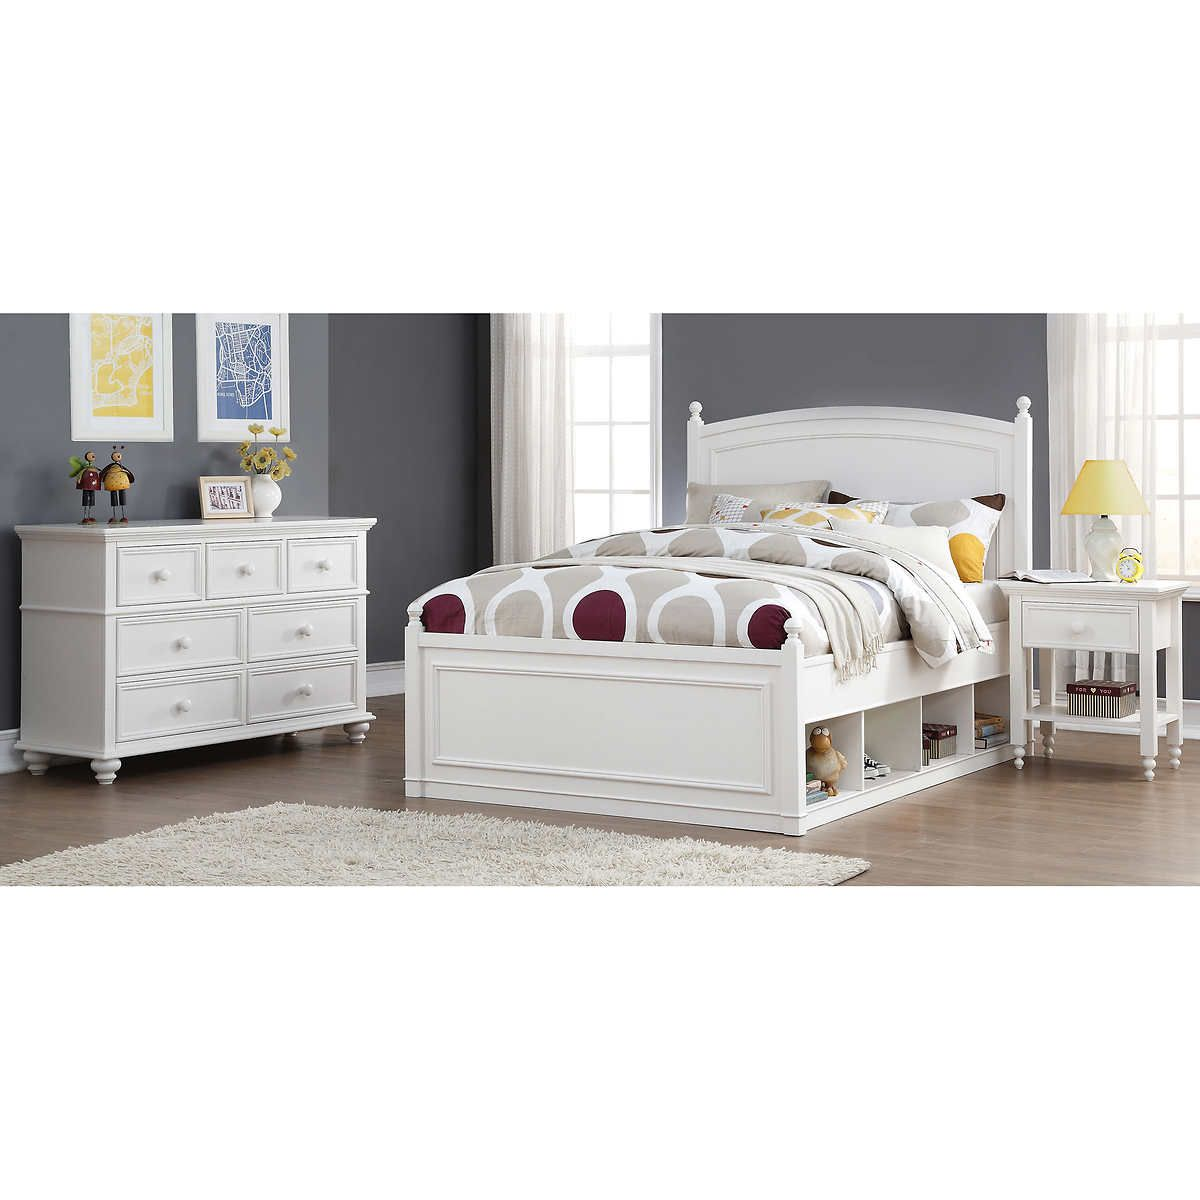 bed product gardner piece zoey full at from set white comforter furniture